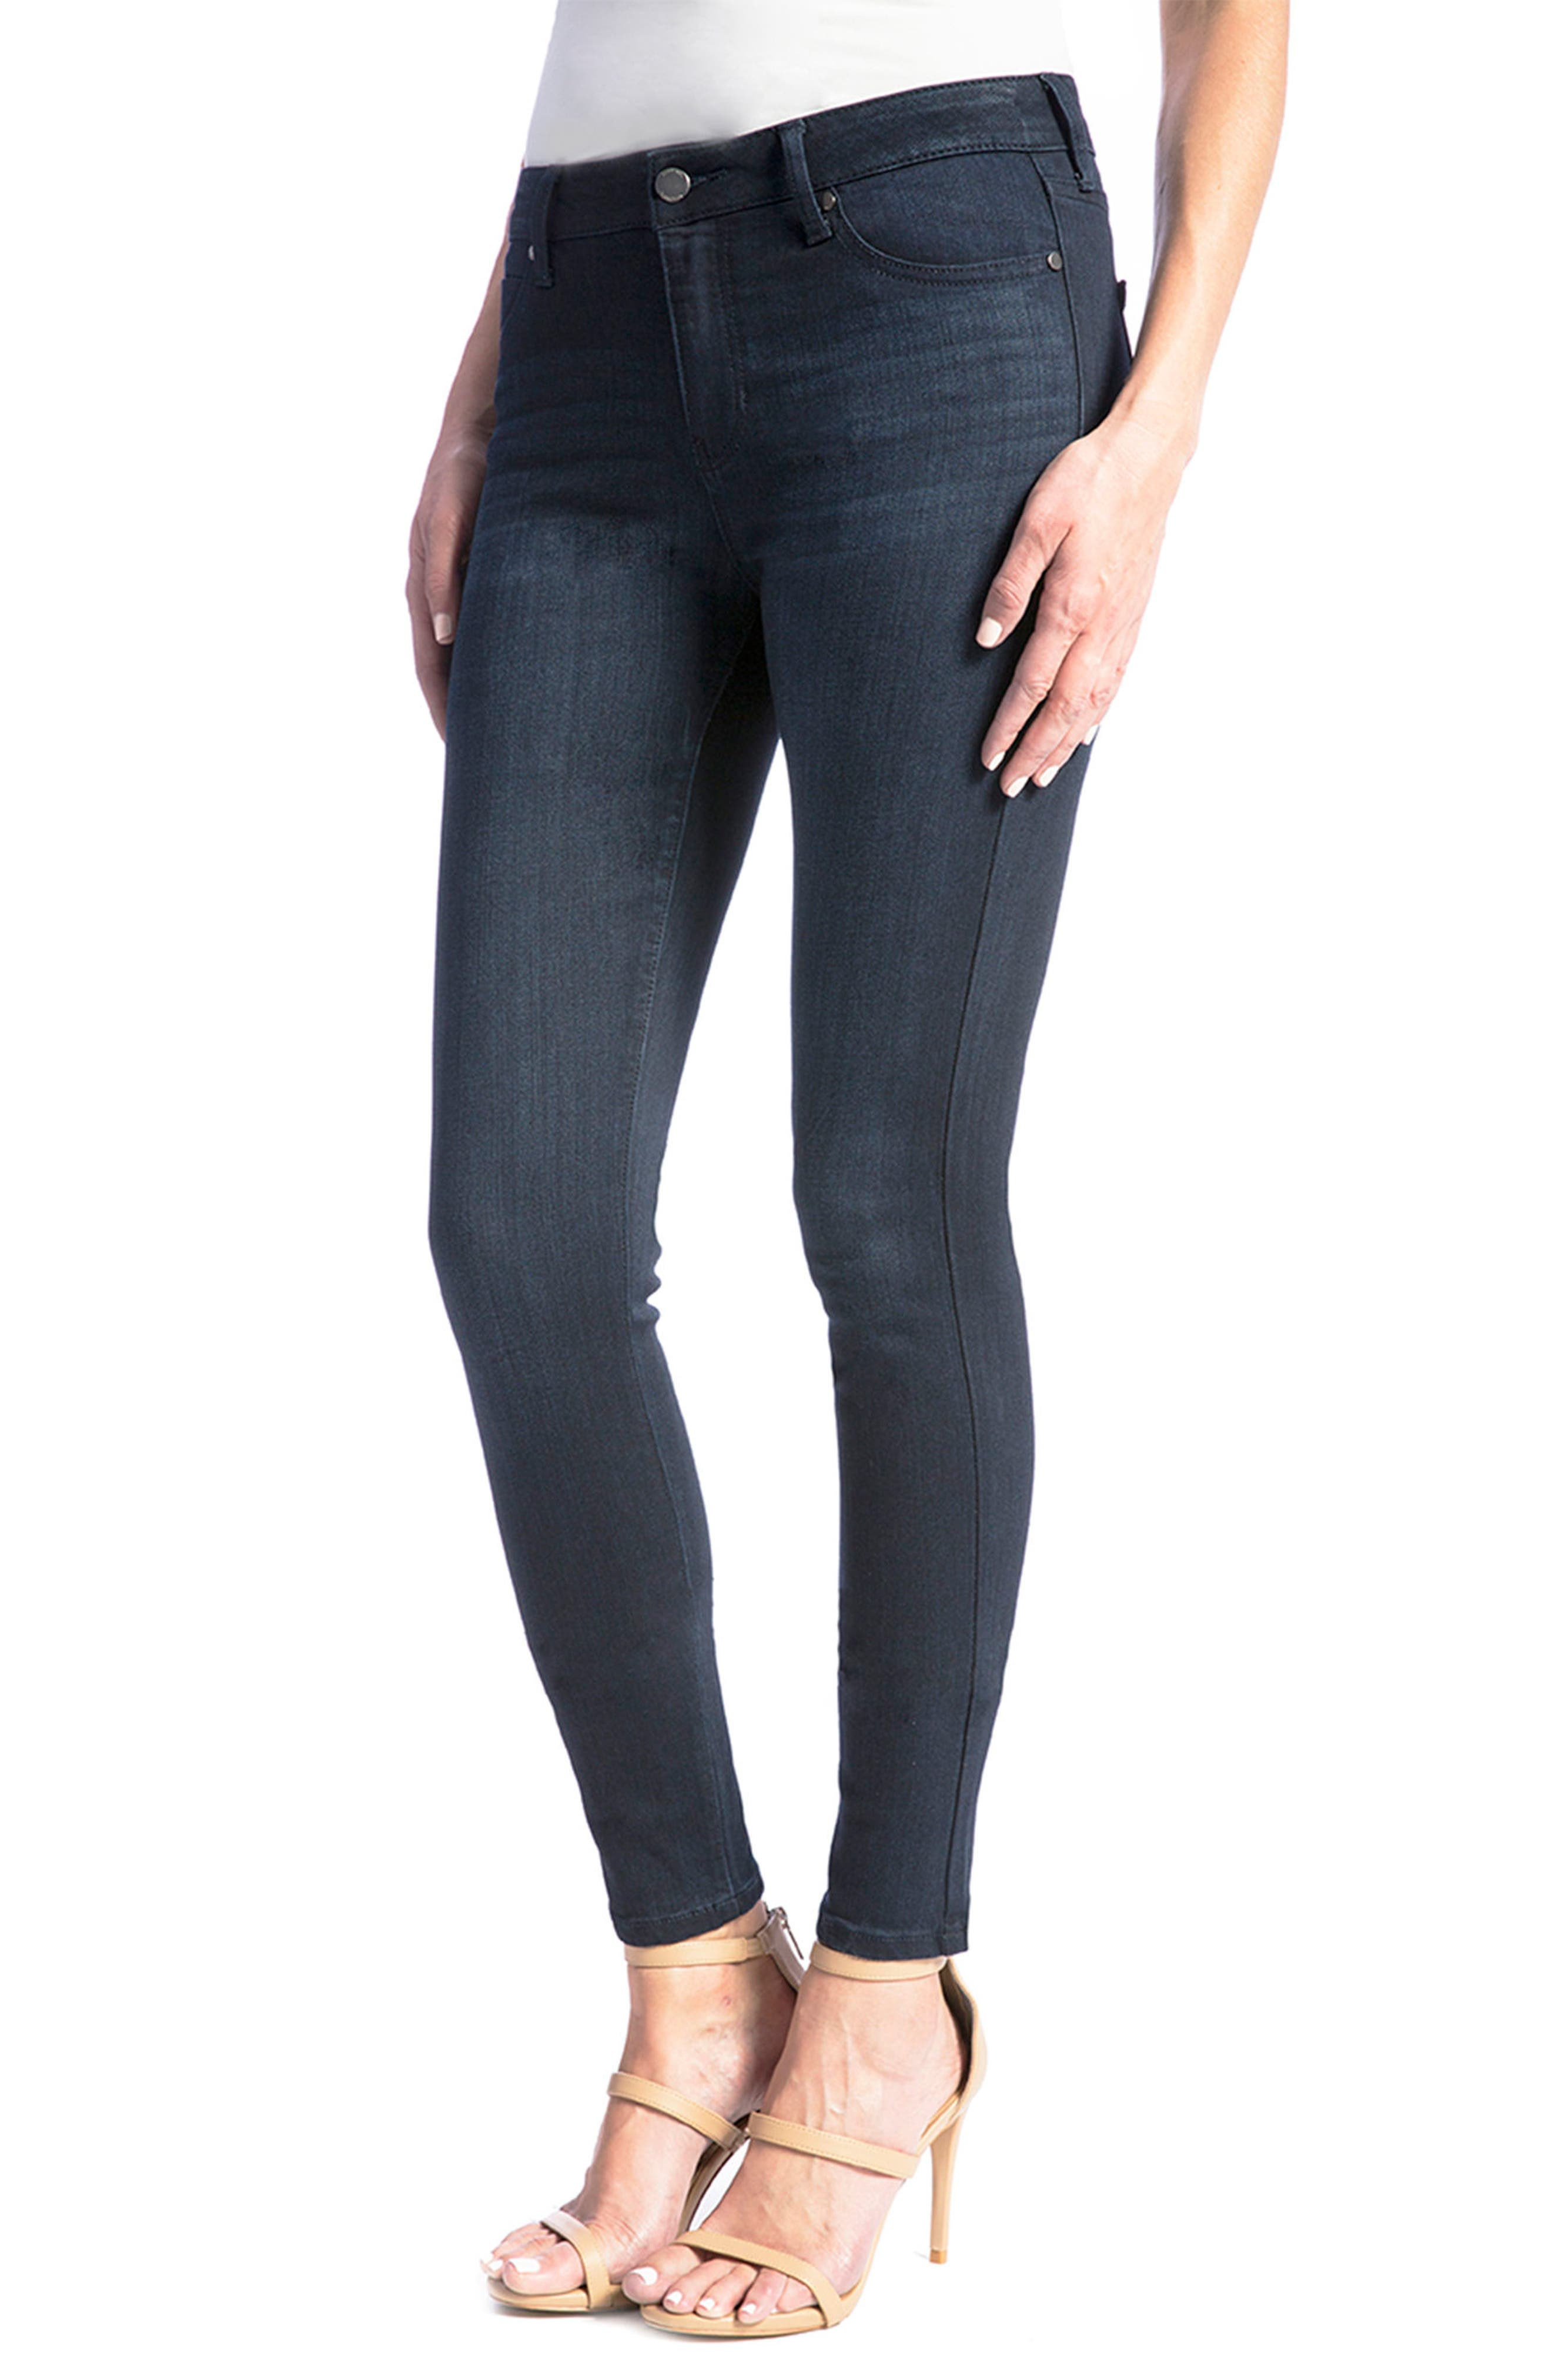 Jeans Co. Abby Stretch Skinny Jeans,                             Alternate thumbnail 3, color,                             402